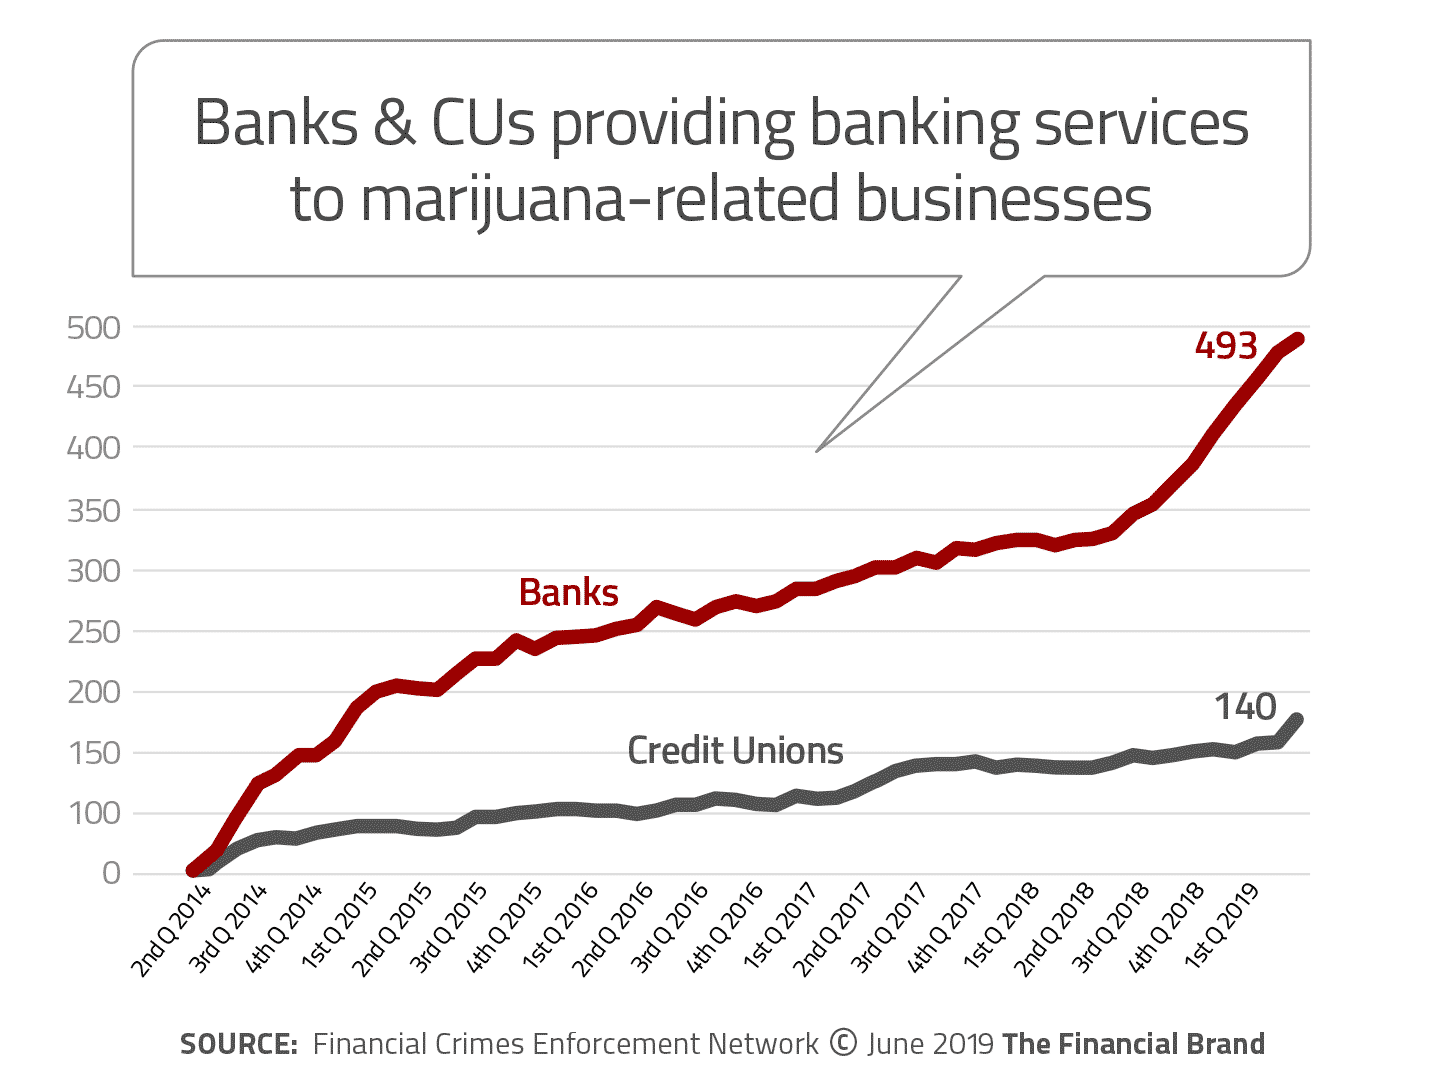 Is the Banking Industry Going to Pot?